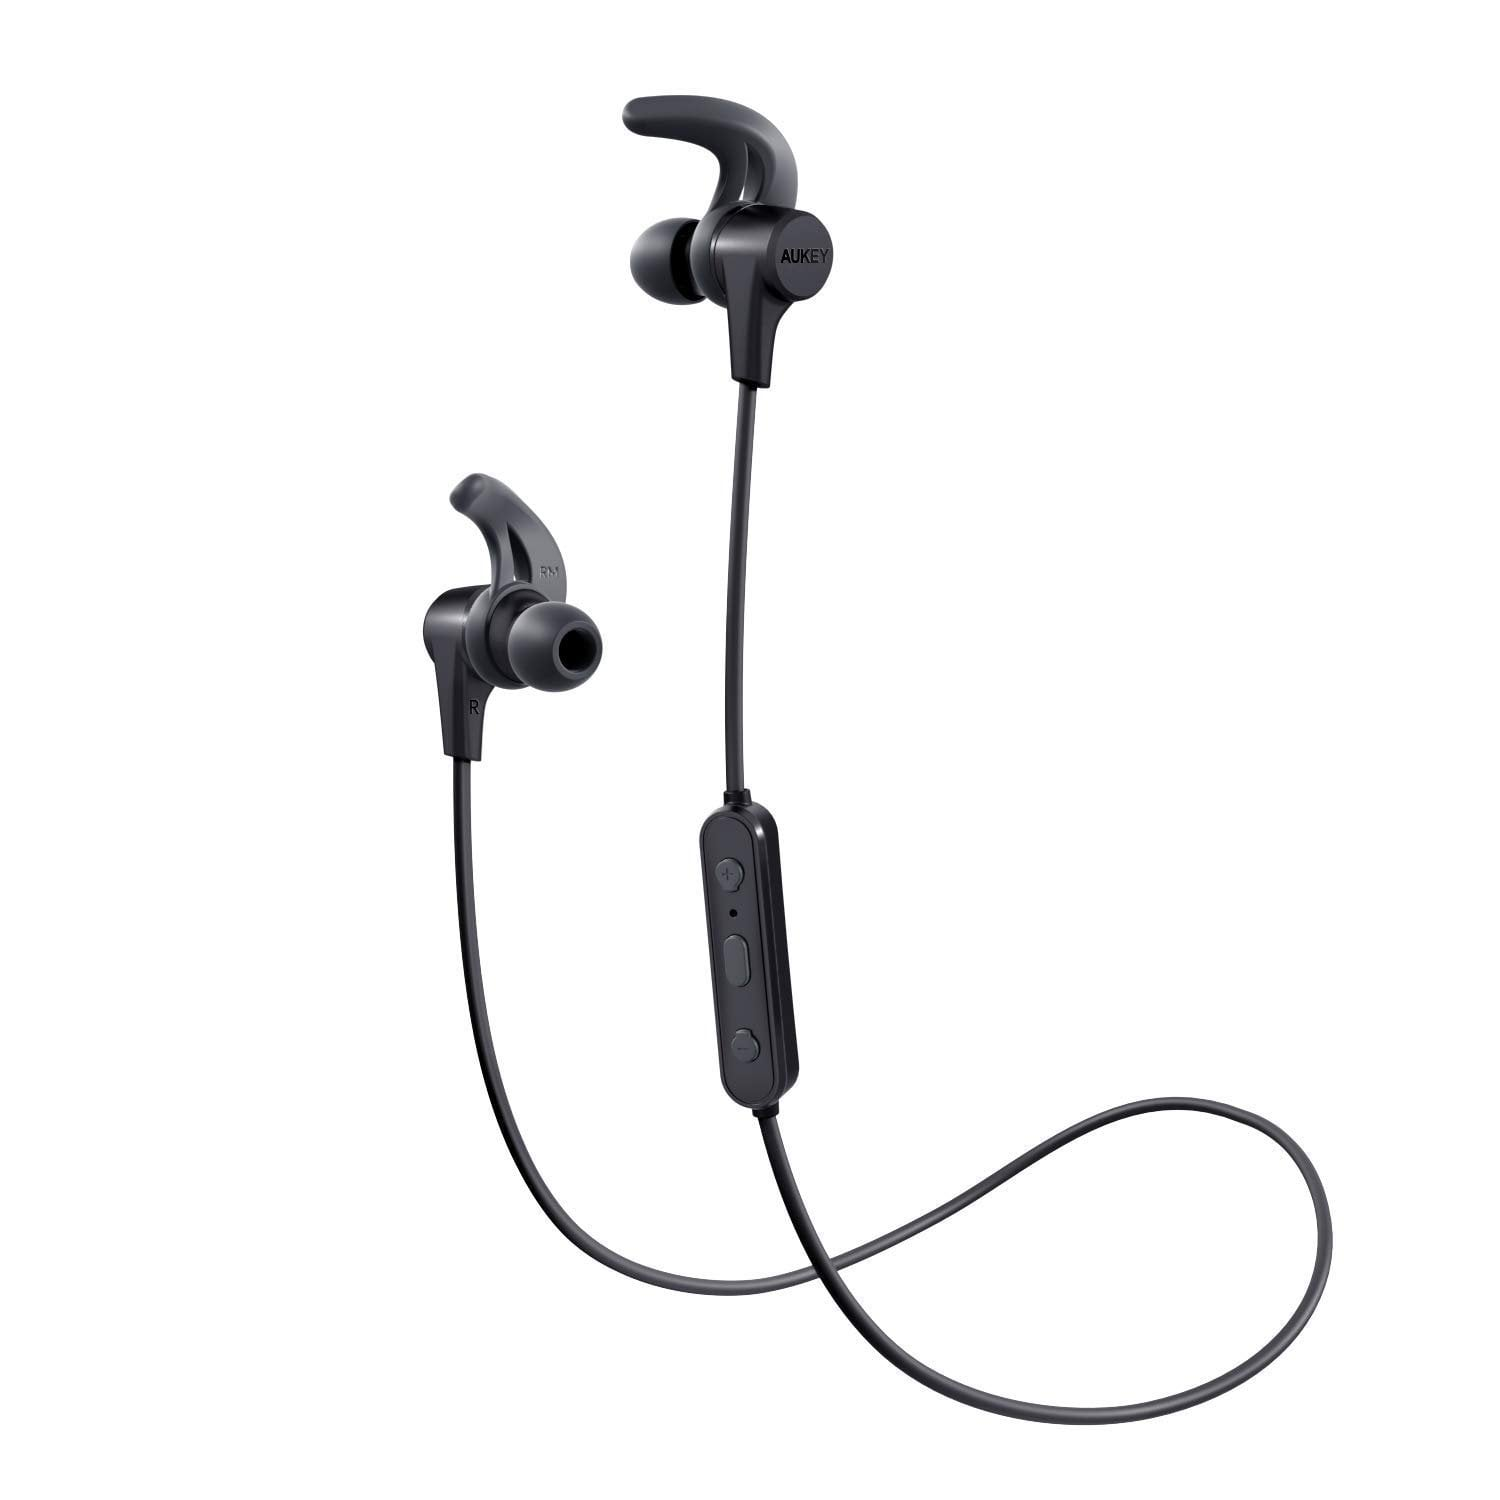 AUKEY Latitude Lite Wireless Earbuds